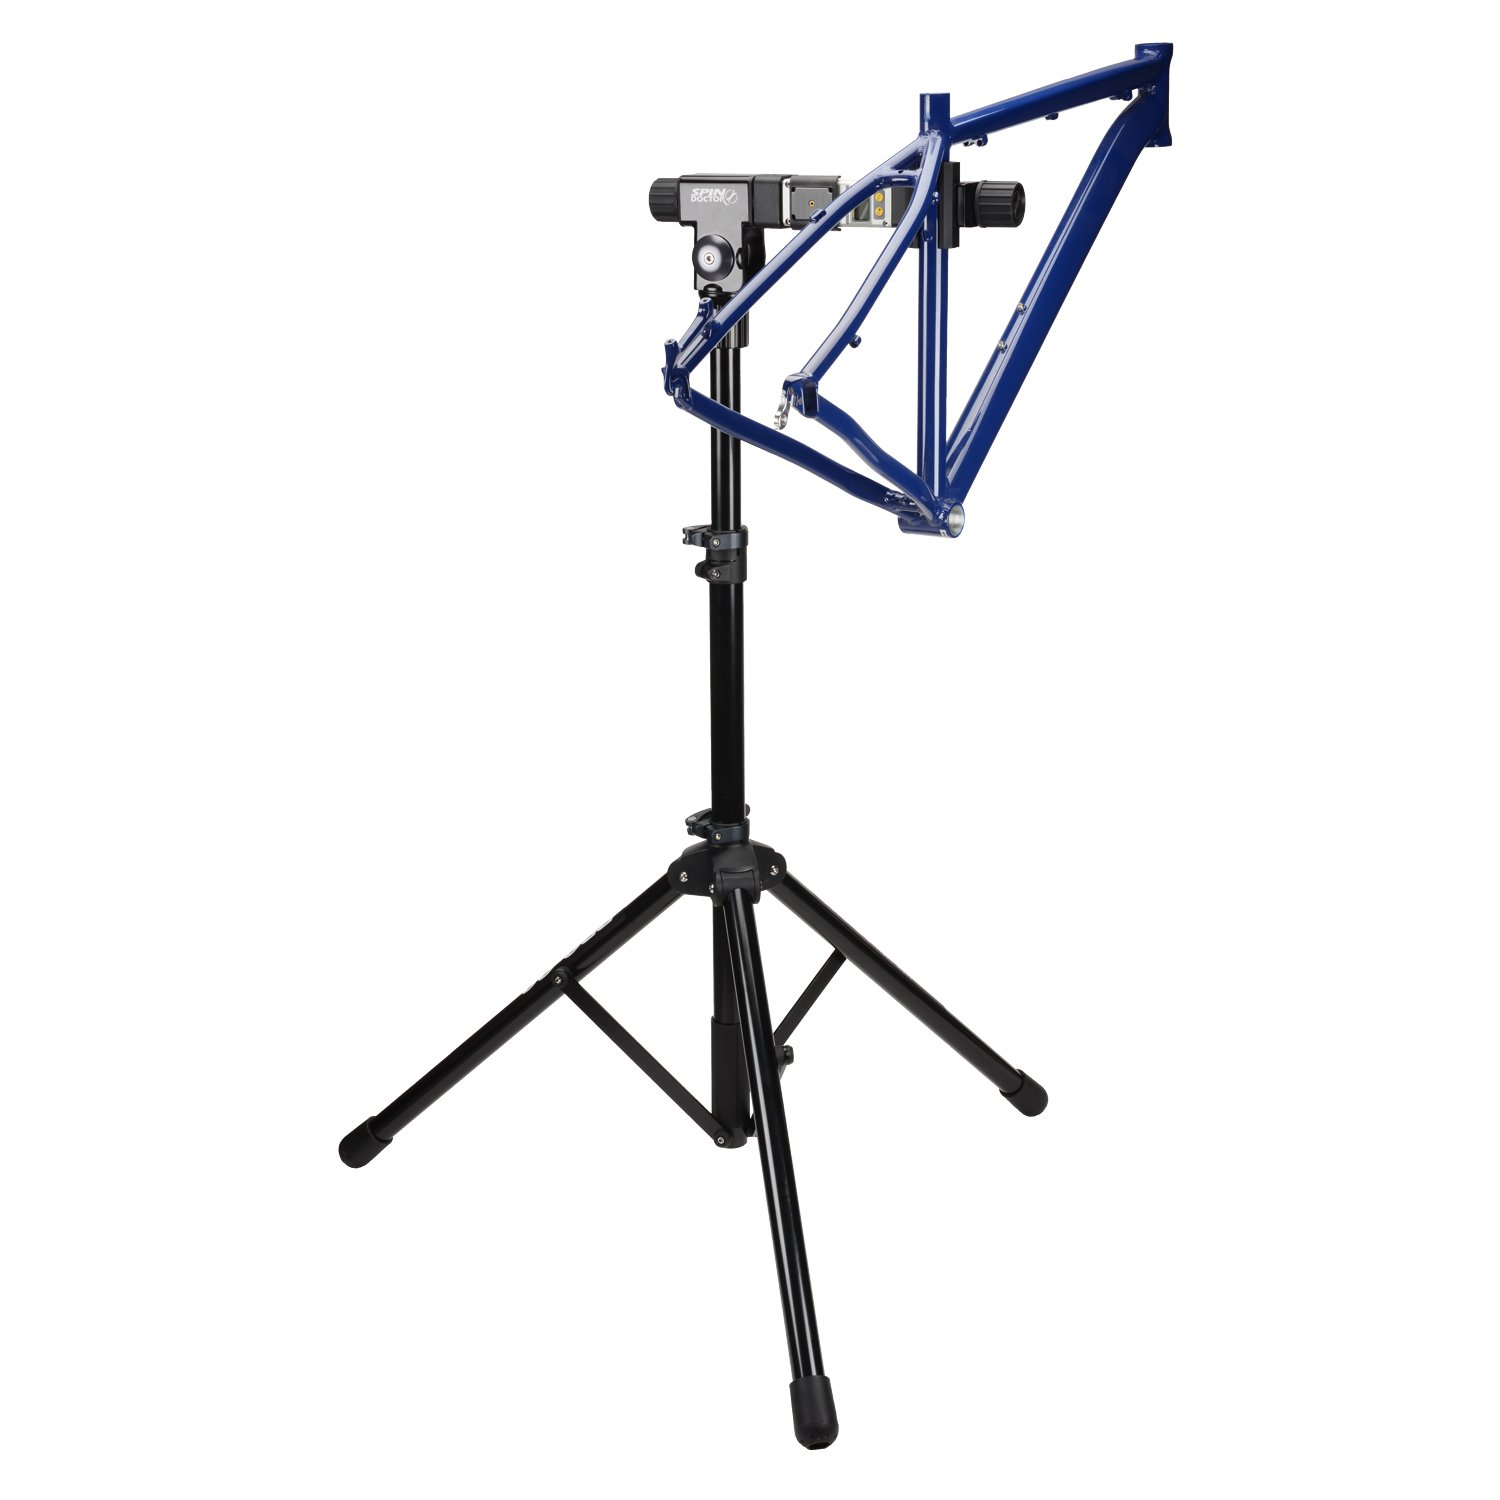 Spin Doctor Pro G3 DELUXE Bicycle Work Stand by Spin Doctor (Image #3)